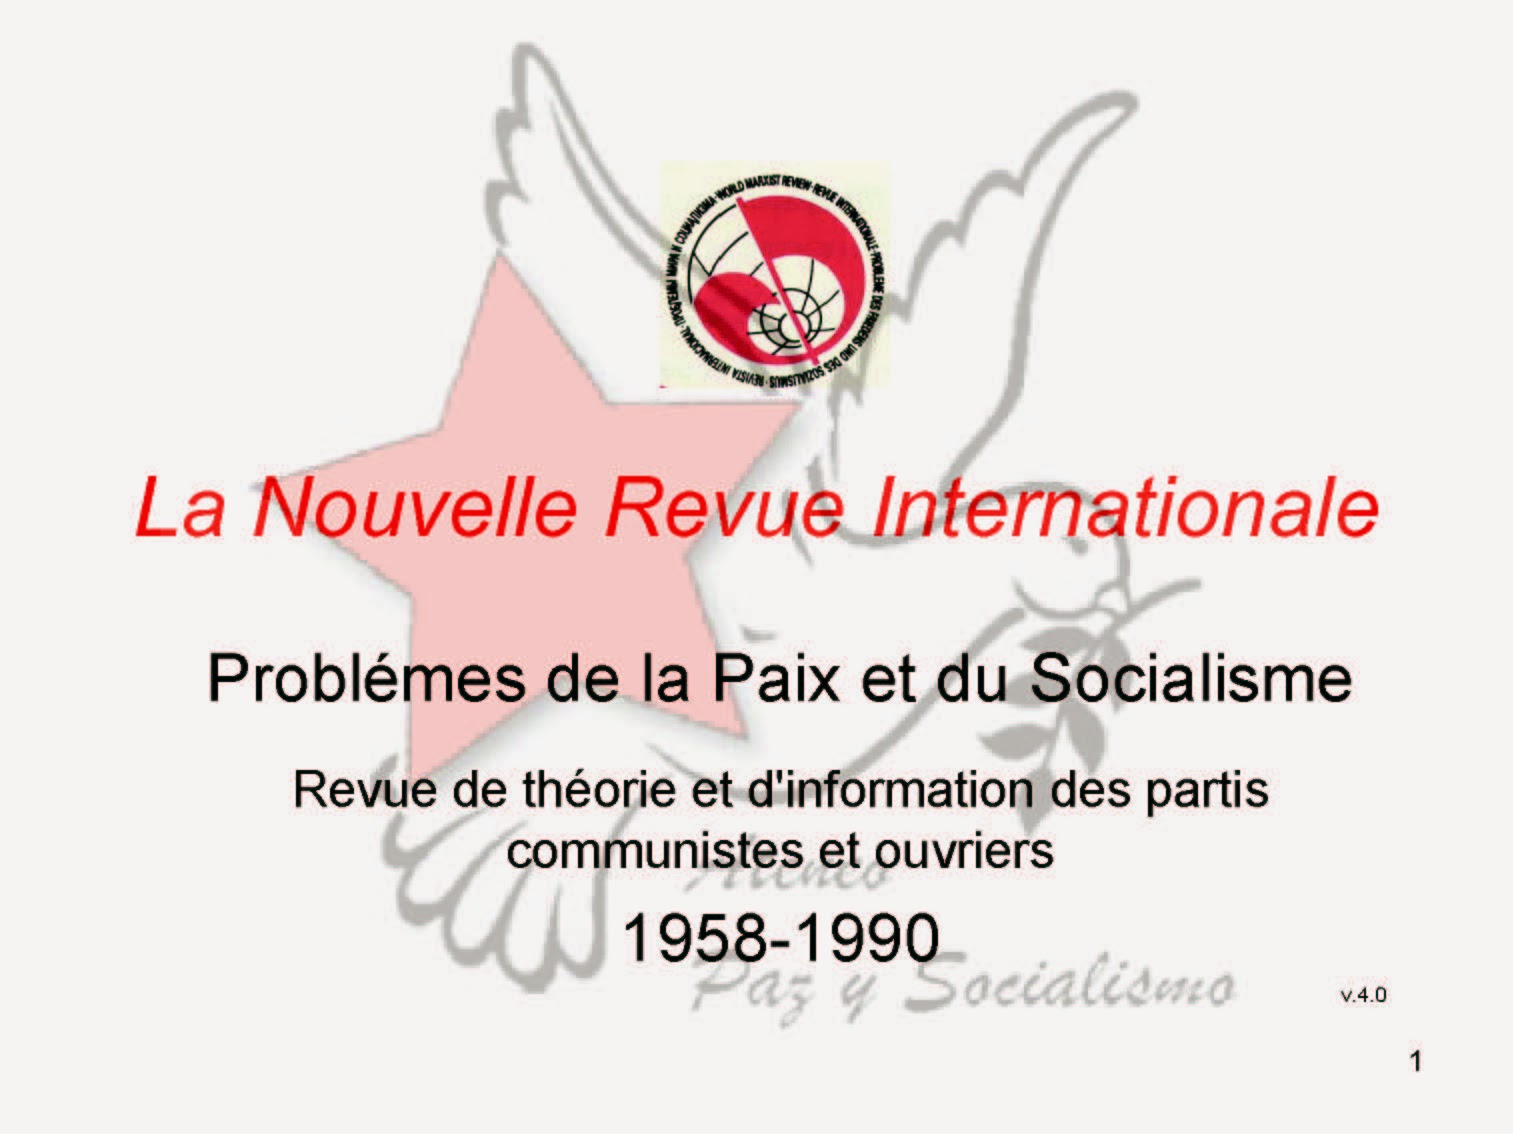 La Nouvelle Revue Internationale 1958-1959